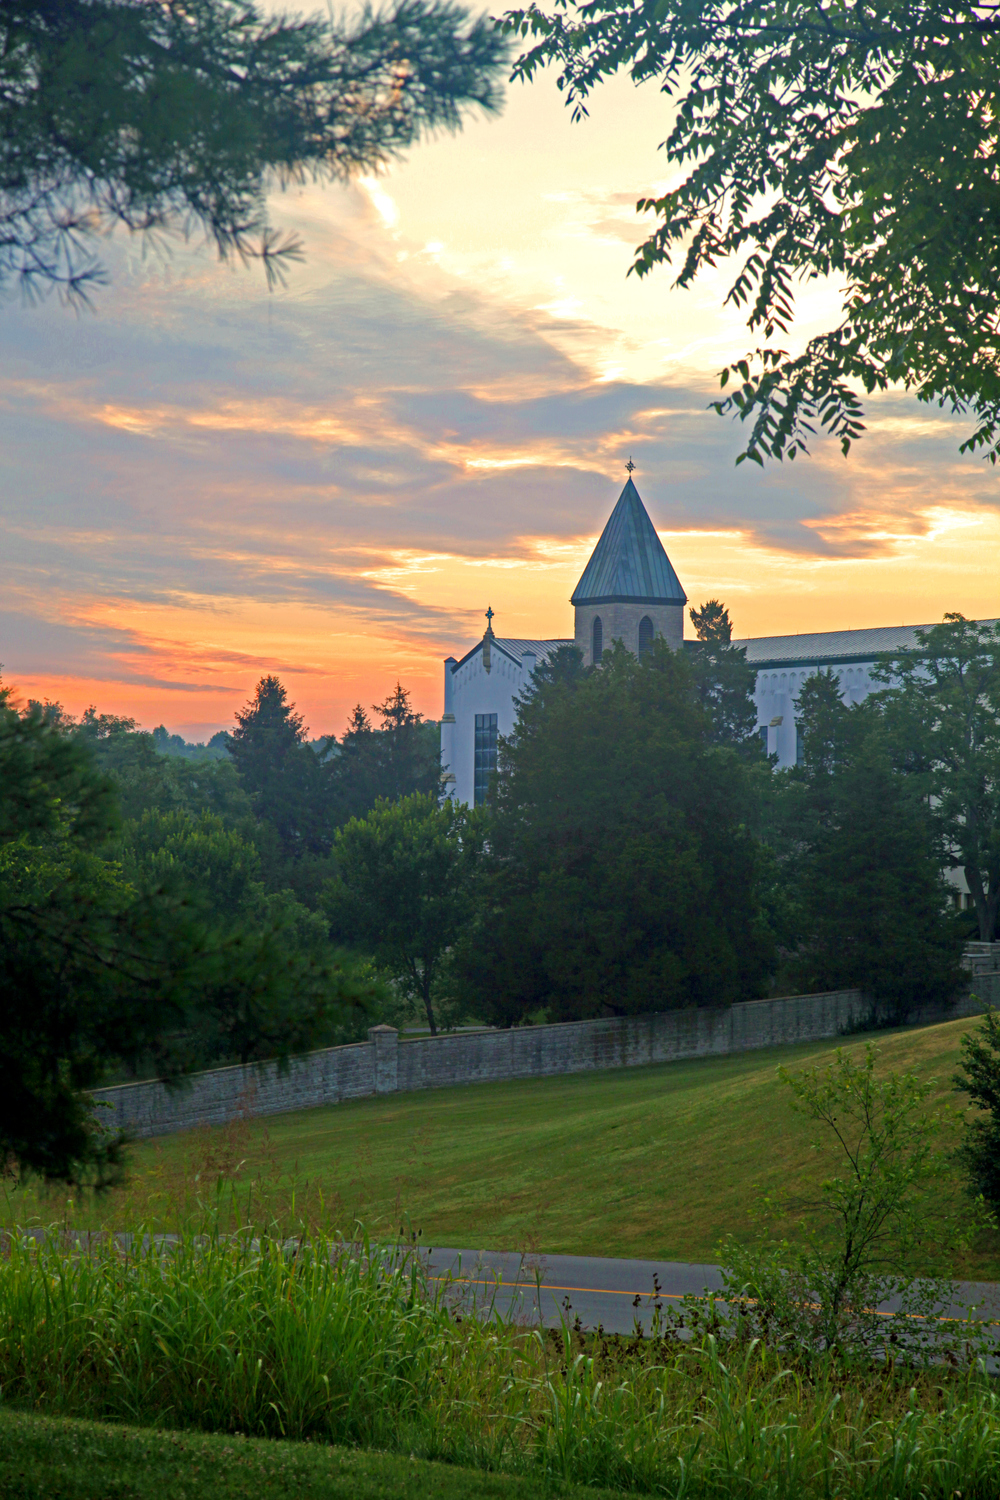 Abbey of Our Lady of Gethsemani Bell Tower at Dawn.